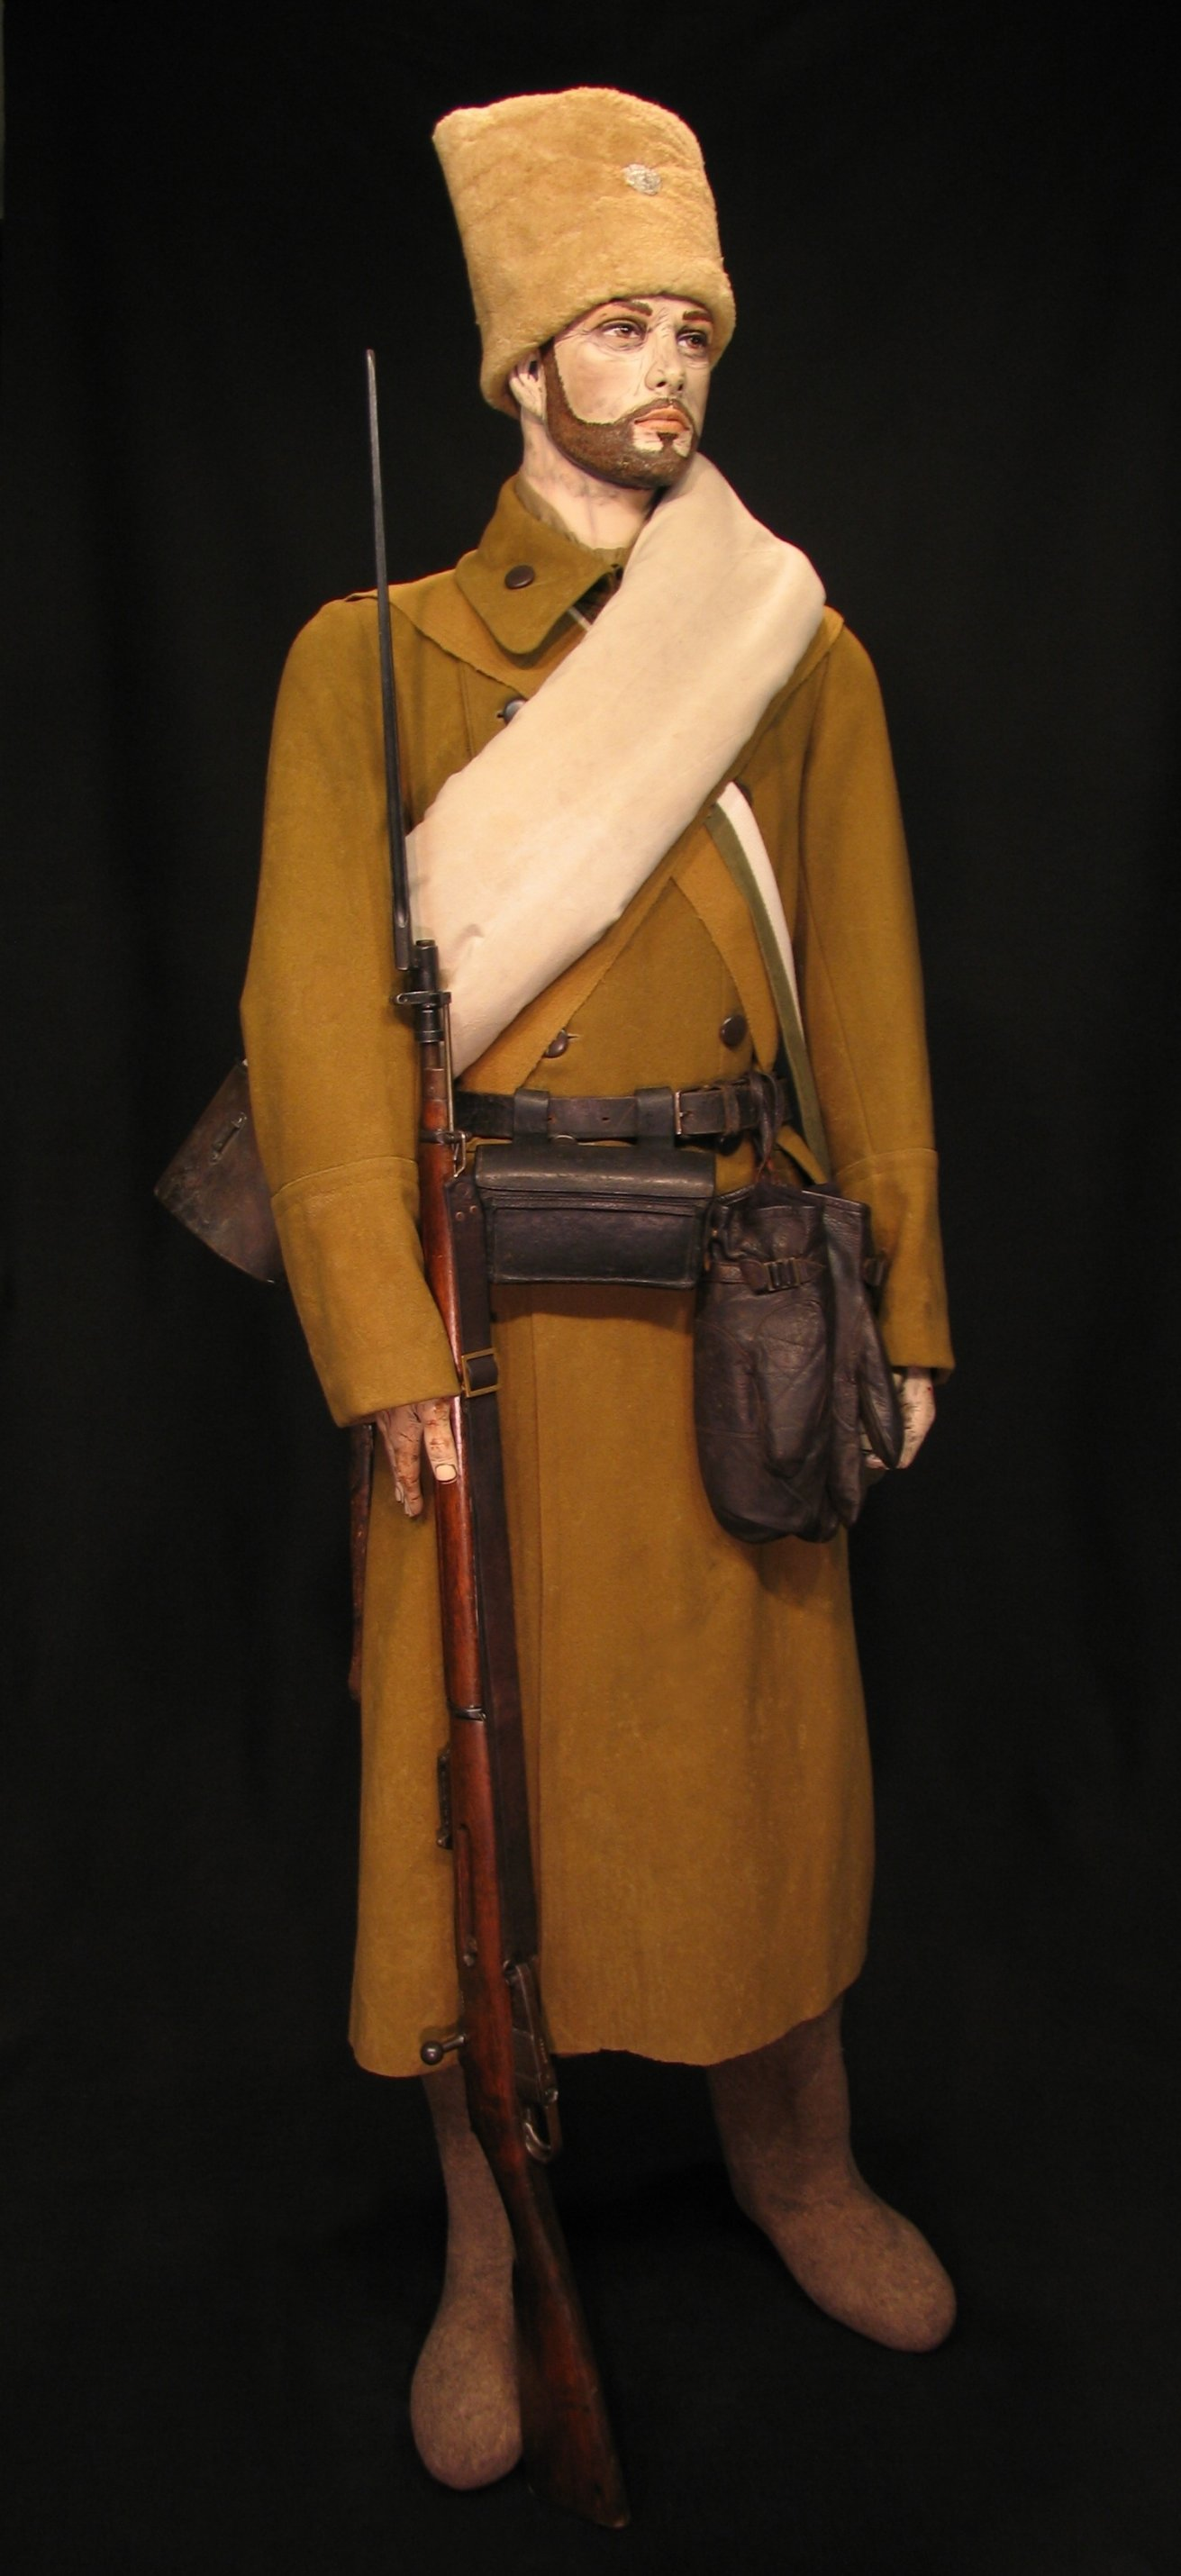 2-Czech Legion Winter Dress c 1916-1920 02R.jpg